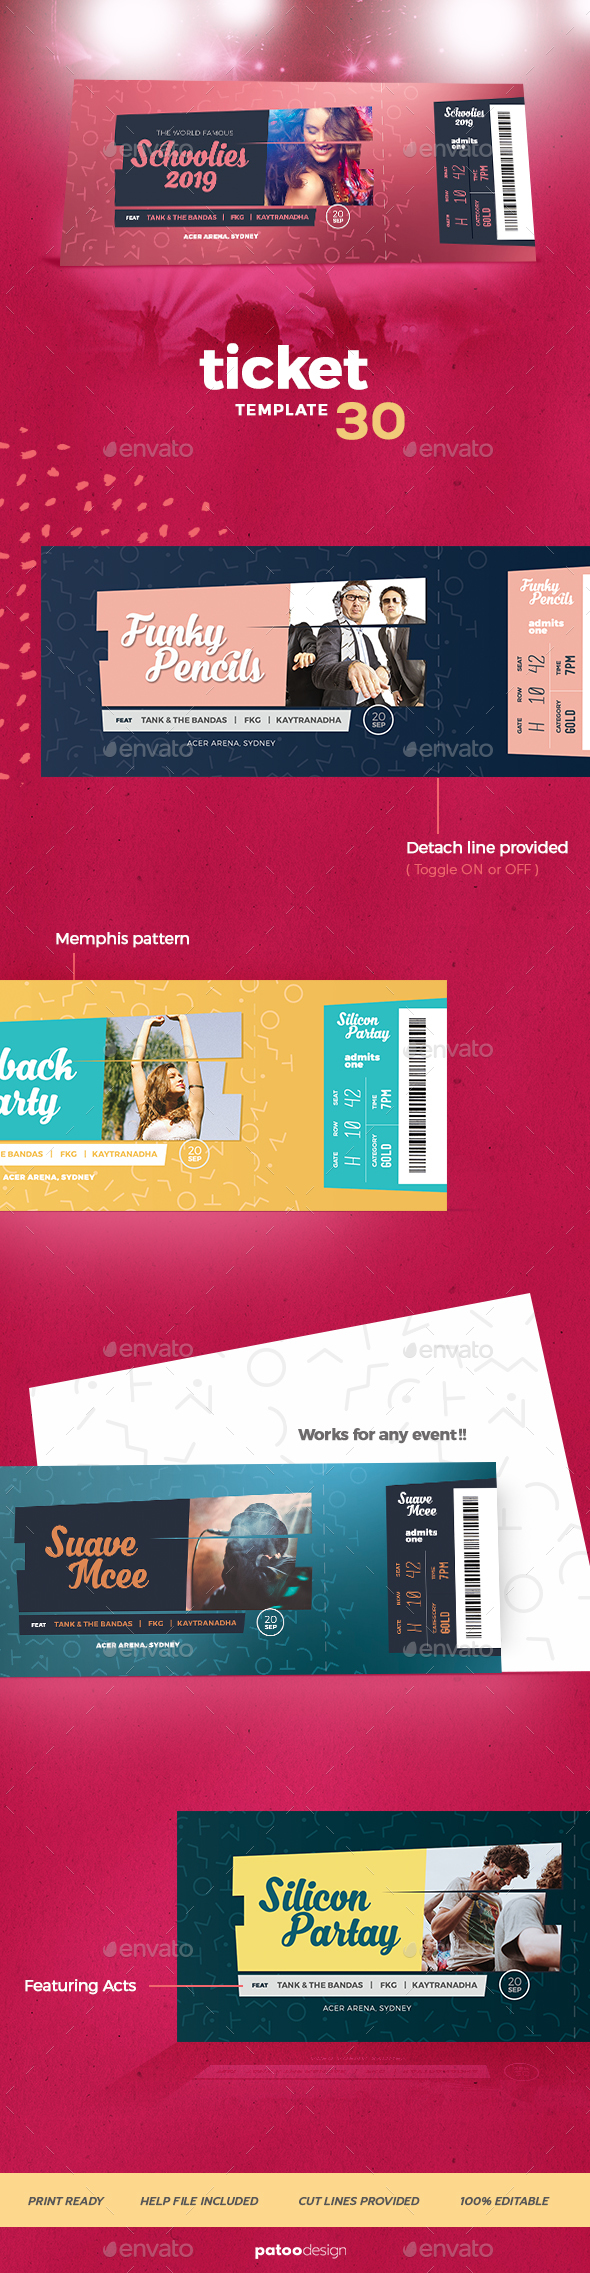 Event Tickets Template 30 - Miscellaneous Print Templates